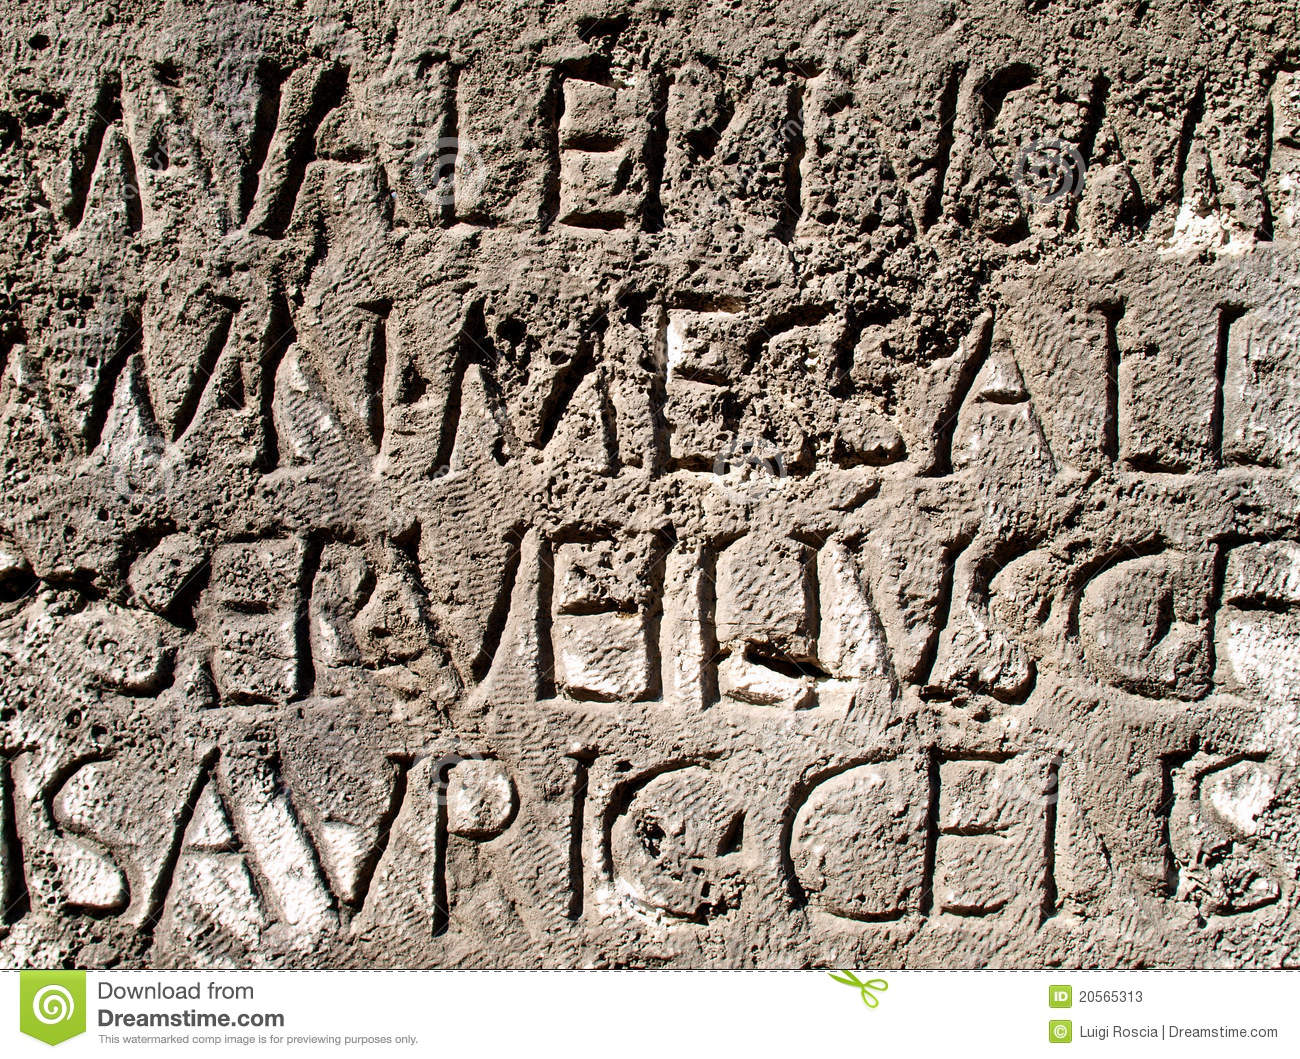 ancient rome writing The early historical record the early roman republic (509–264 bce) and the preceding regal period (753–509 bce) are the most poorly documented periods of roman historyhistorical writing in rome did not begin until the late 3rd century bce, when rome had already completed its conquest of italy, established itself as a major power of the ancient.